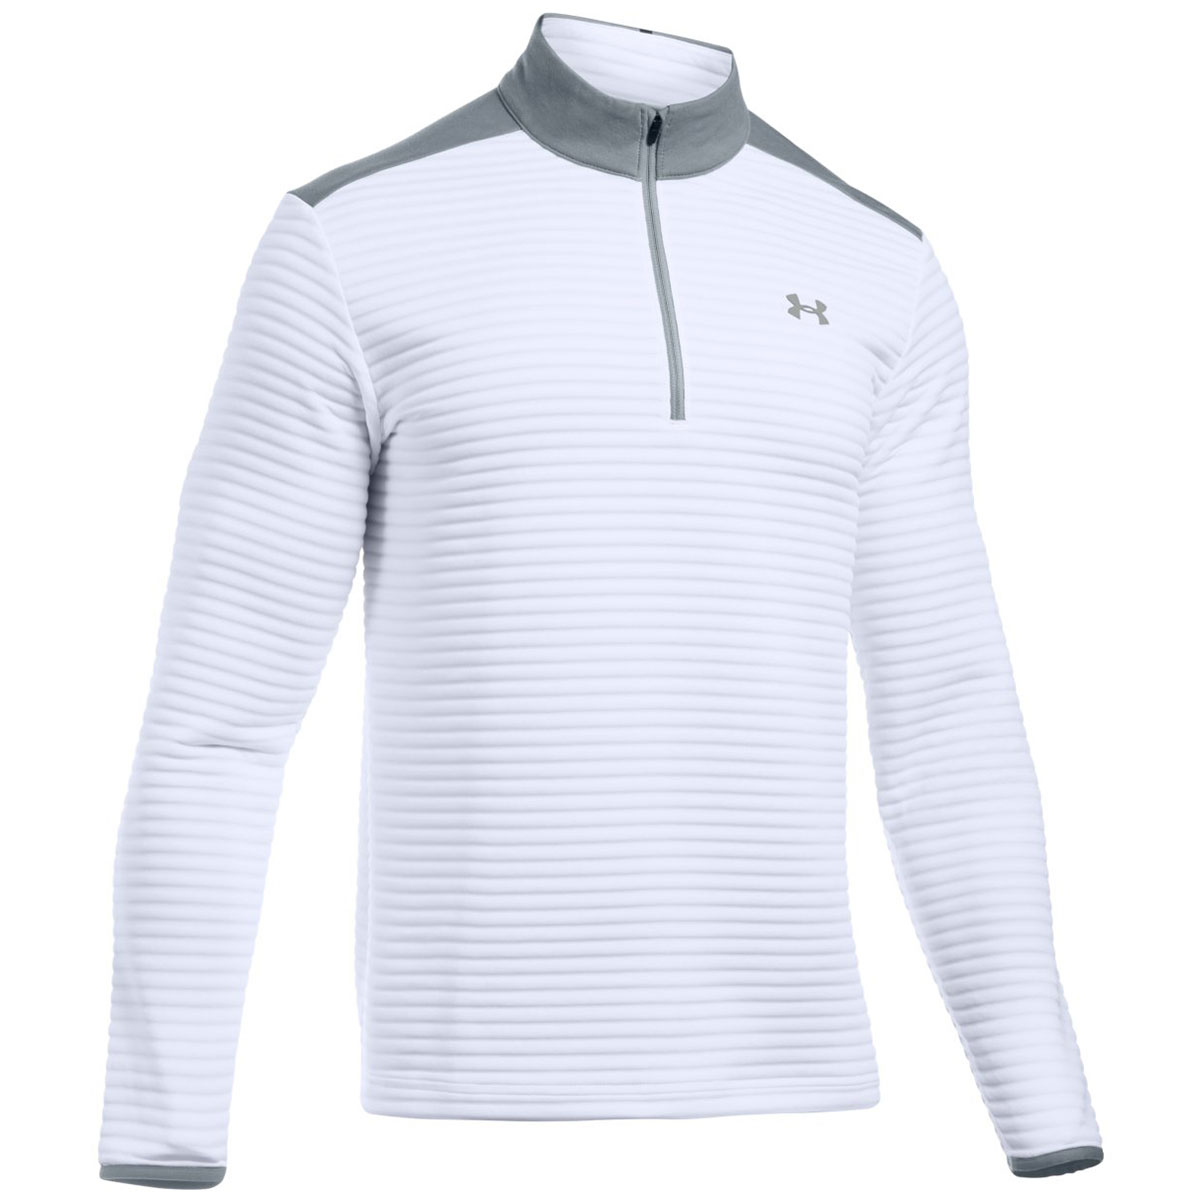 17be11ea8a5 under armour pullover cheap   OFF35% The Largest Catalog Discounts